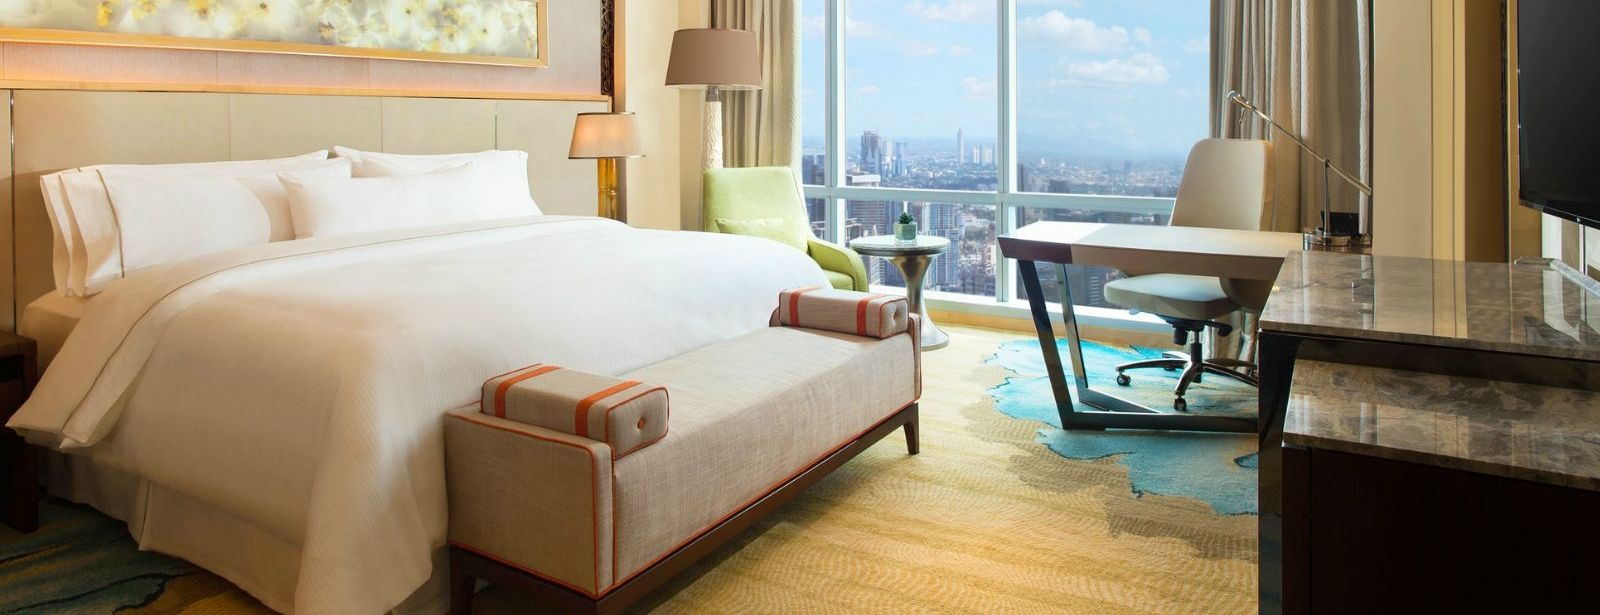 5 Hotels For Your Staycation In Jakarta Indoindians Com